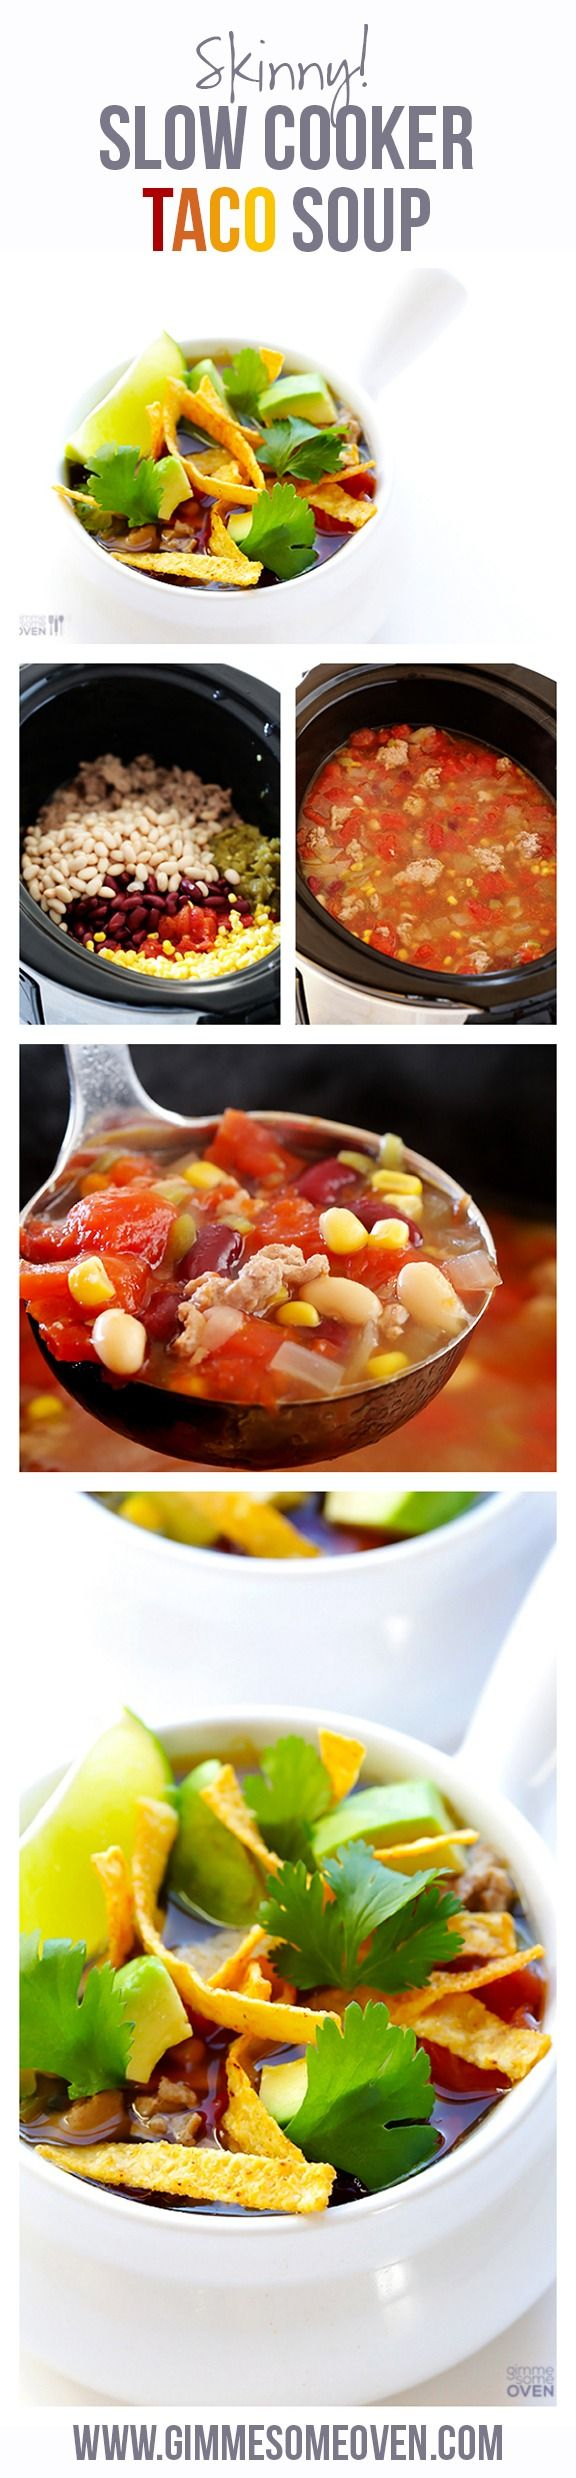 This delicious Slow Cooker Taco Soup takes minutes to make, and is lighter and super tasty too! gimmesomeoven.com